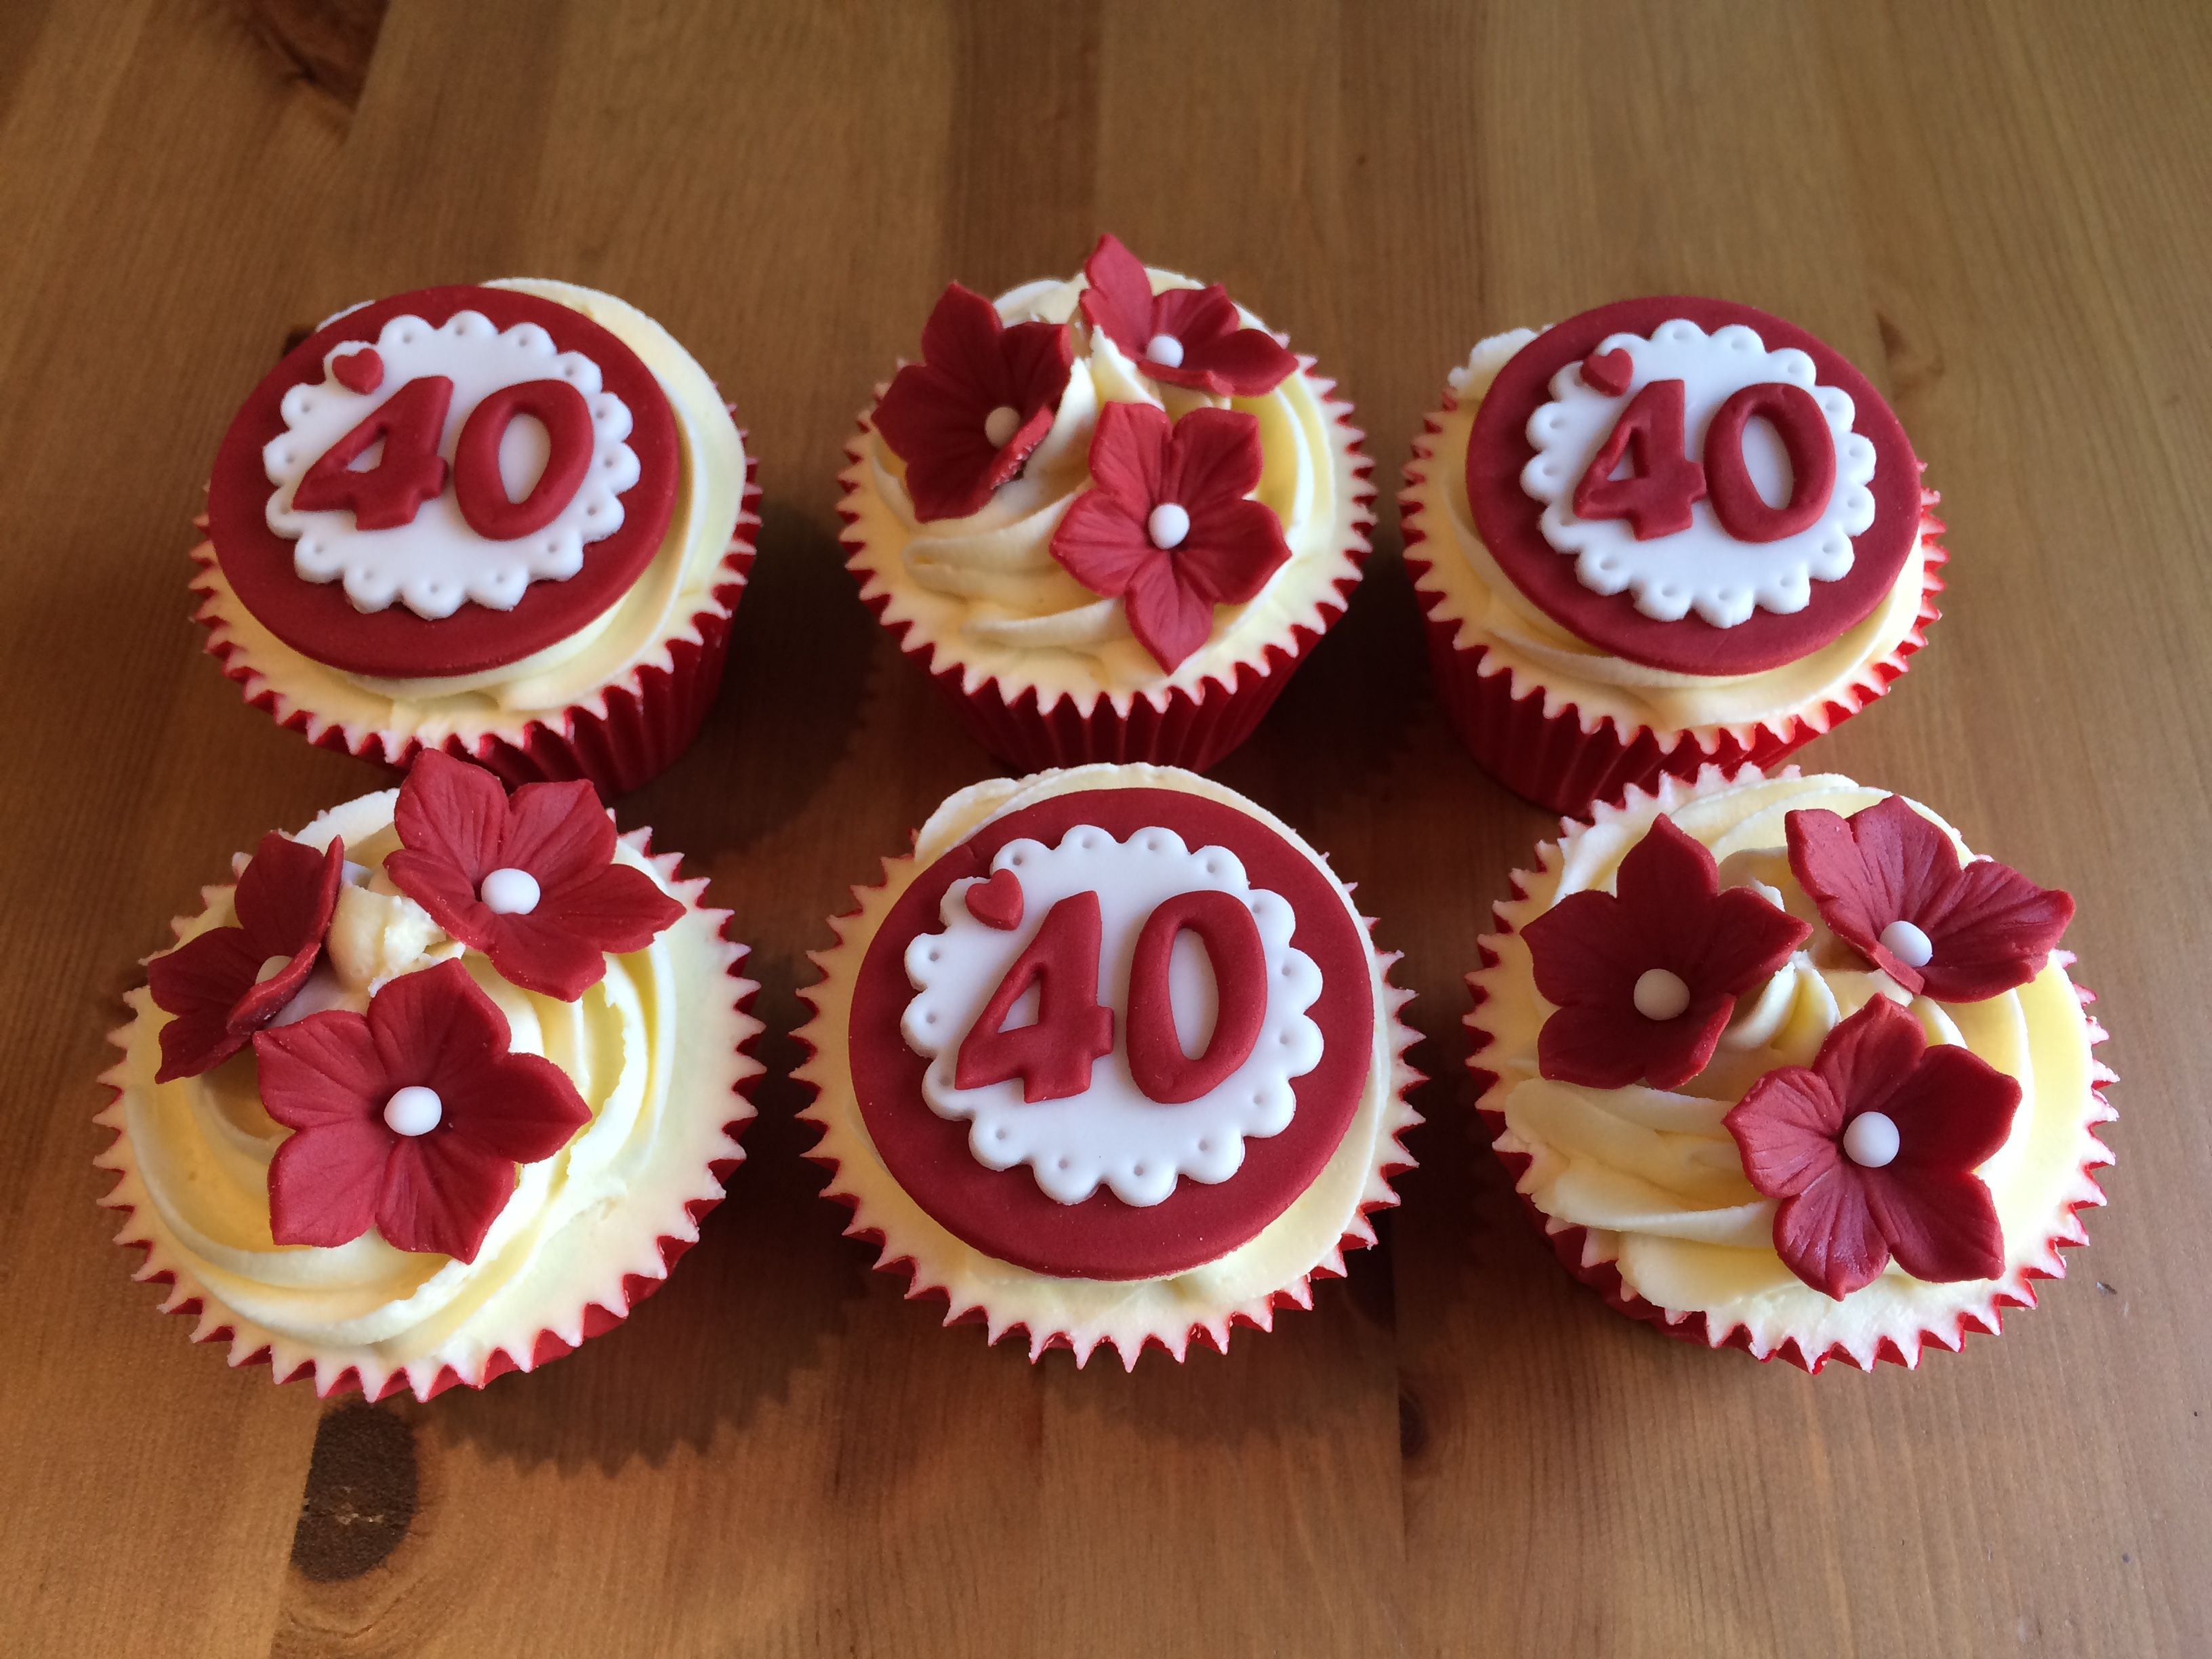 Ruby Wedding Cupcakes 40 Years Together